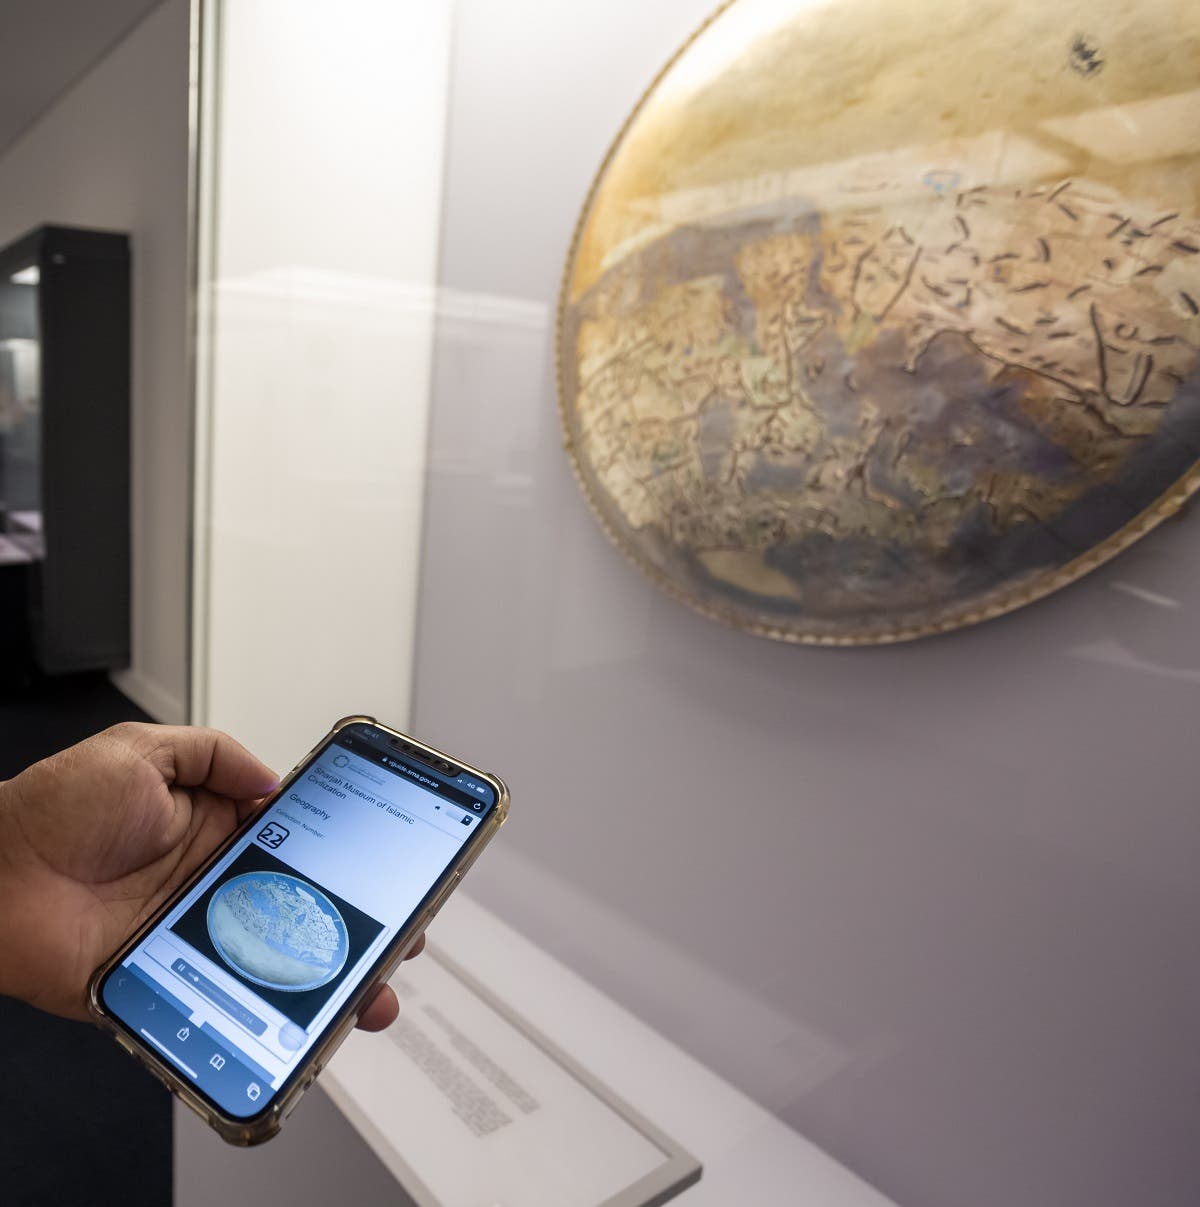 The service allows scanning the QR Code of collections or specific objects for more information about them. (Courtesy: SMA)